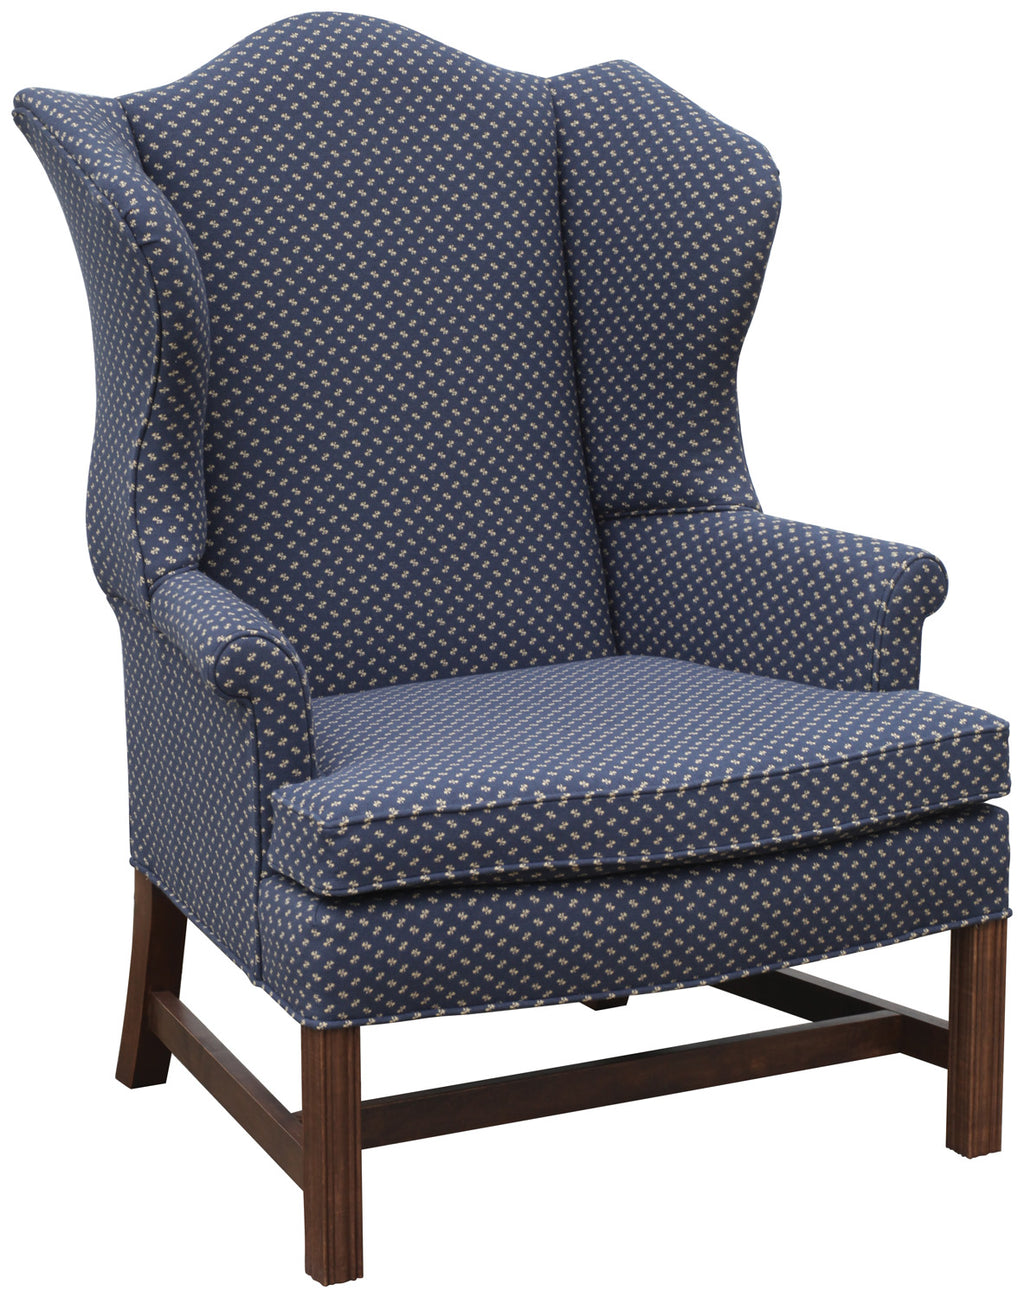 Pembroke Upholstered Chair